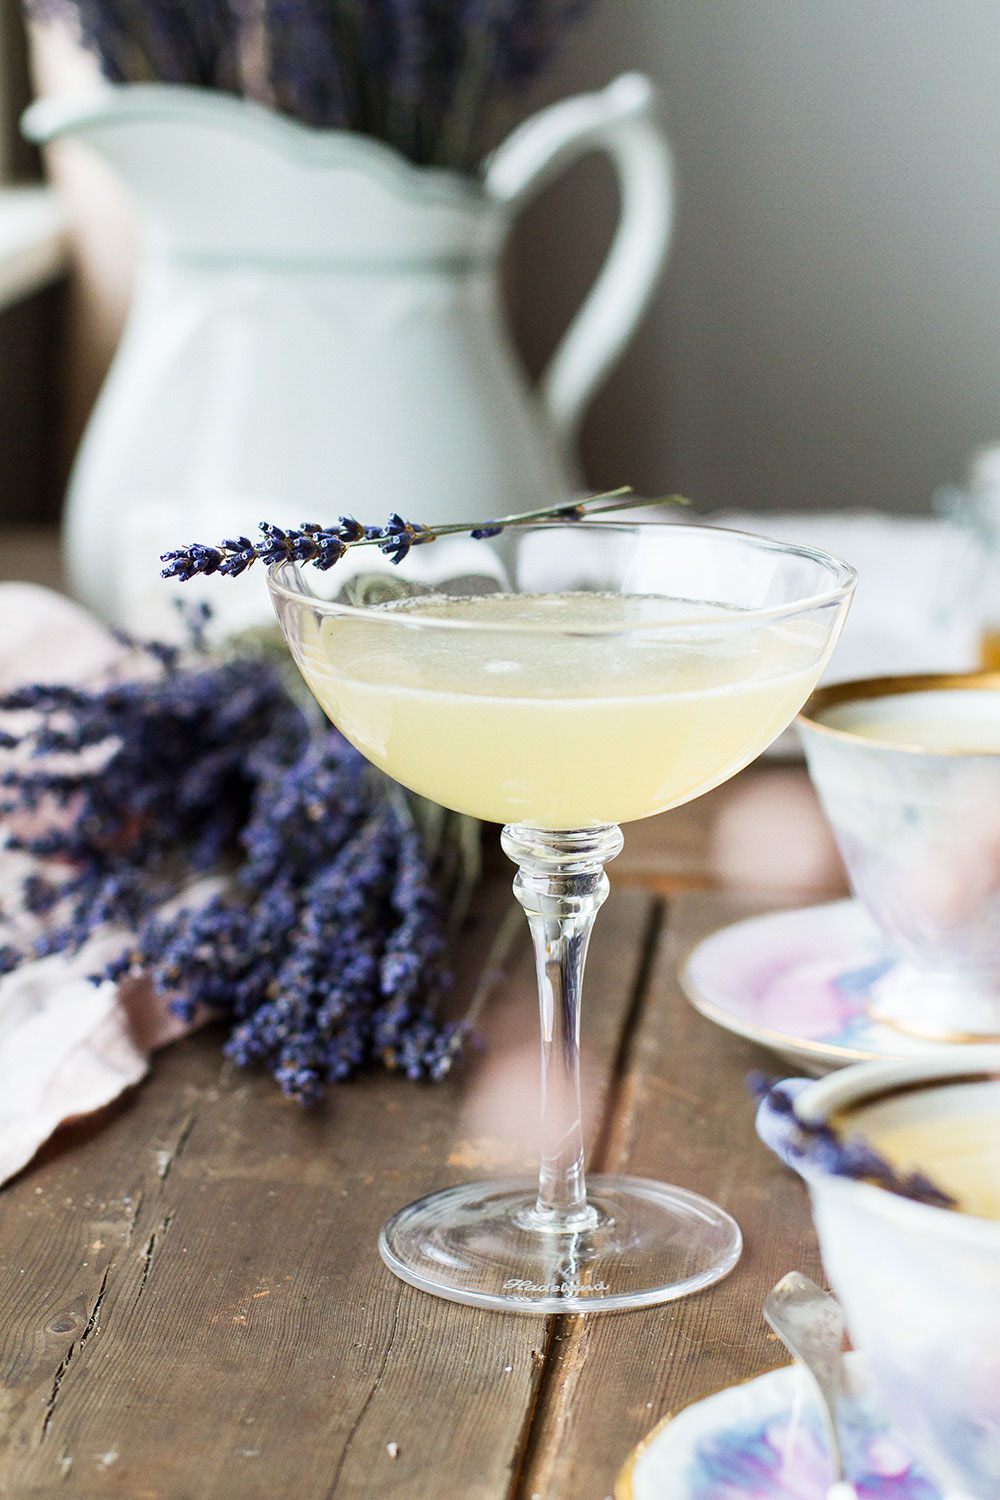 Coupé glass with yellow cocktail, garnished with dried lavender.